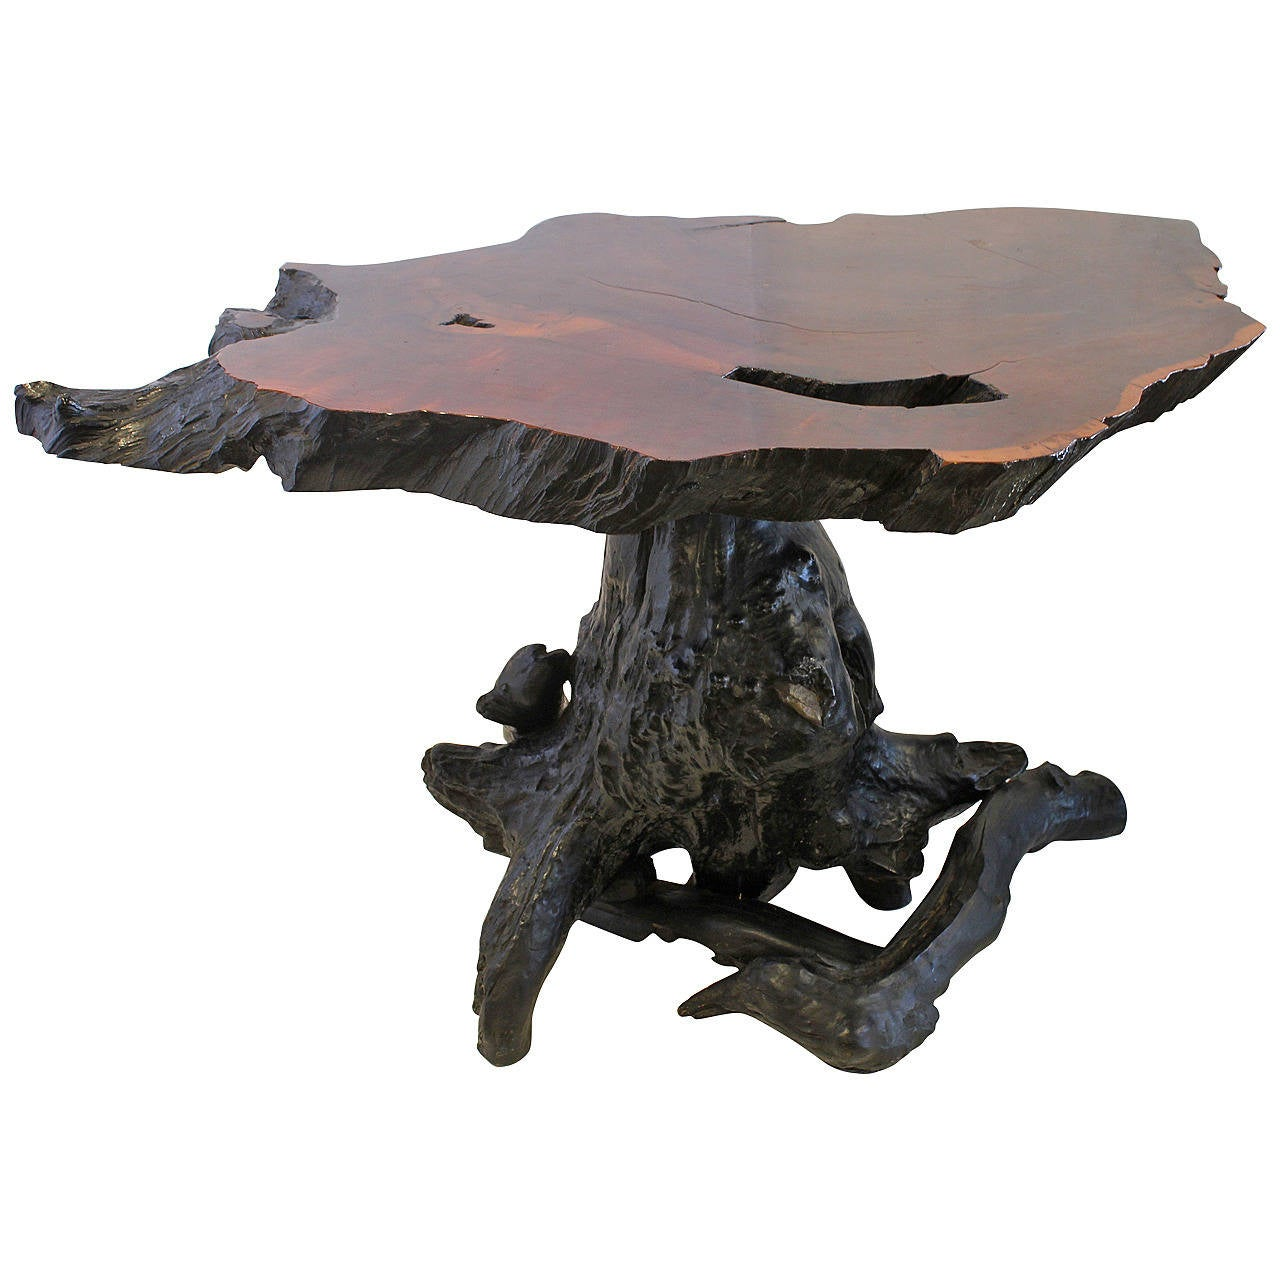 Redwood Tree Coffee Table: Spectacular Redwood Tree Trunk / Root Table For Sale At